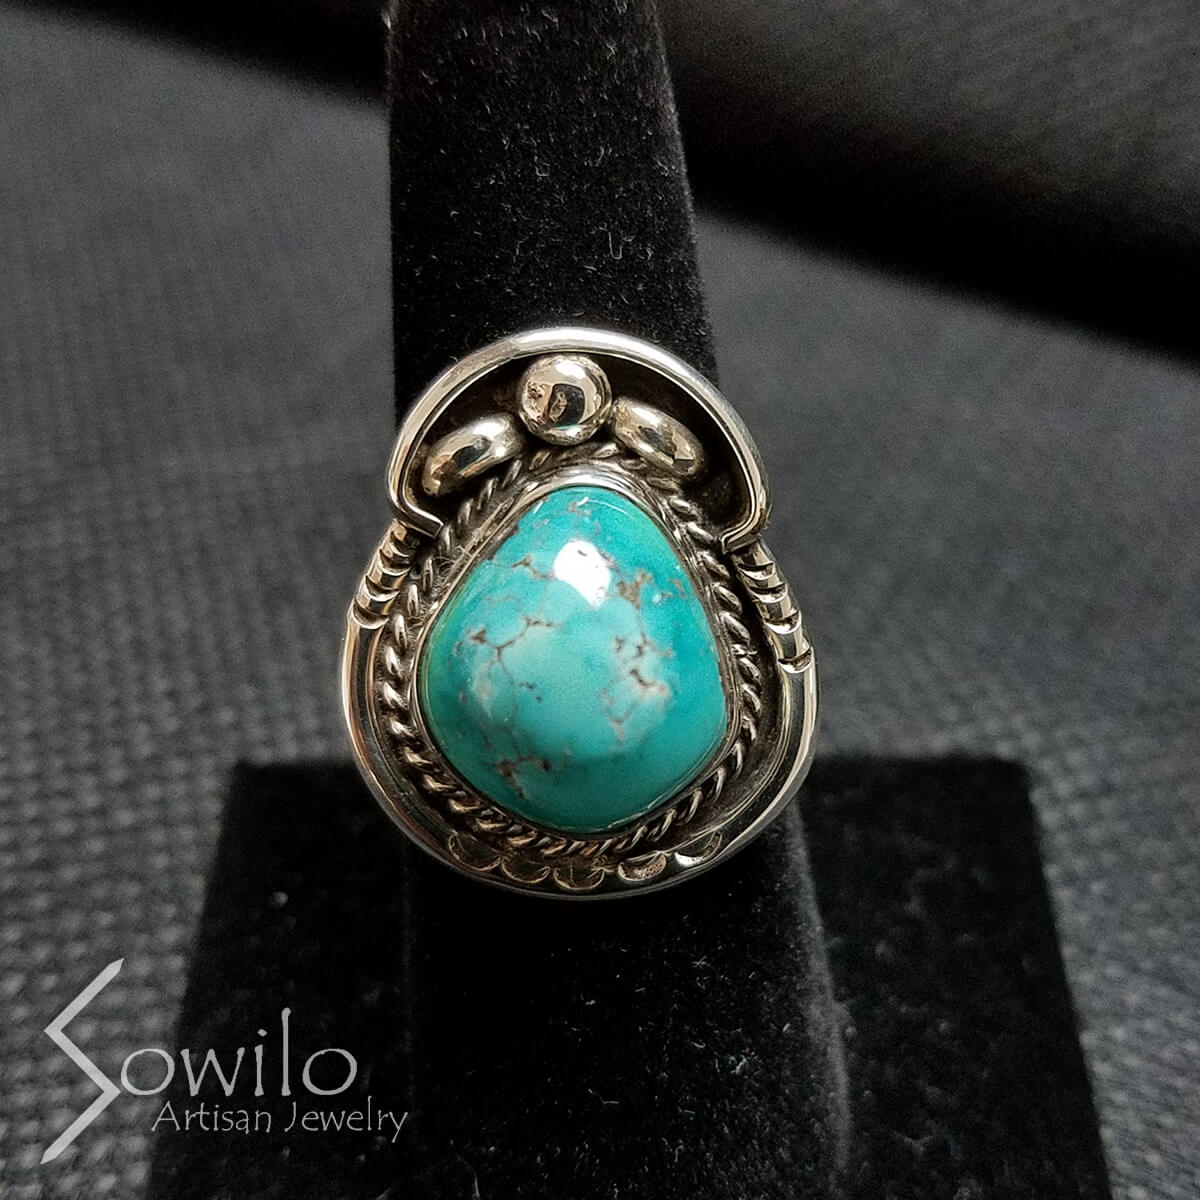 Gallery - Square - Sowilo Artisan Jewelry - Rings